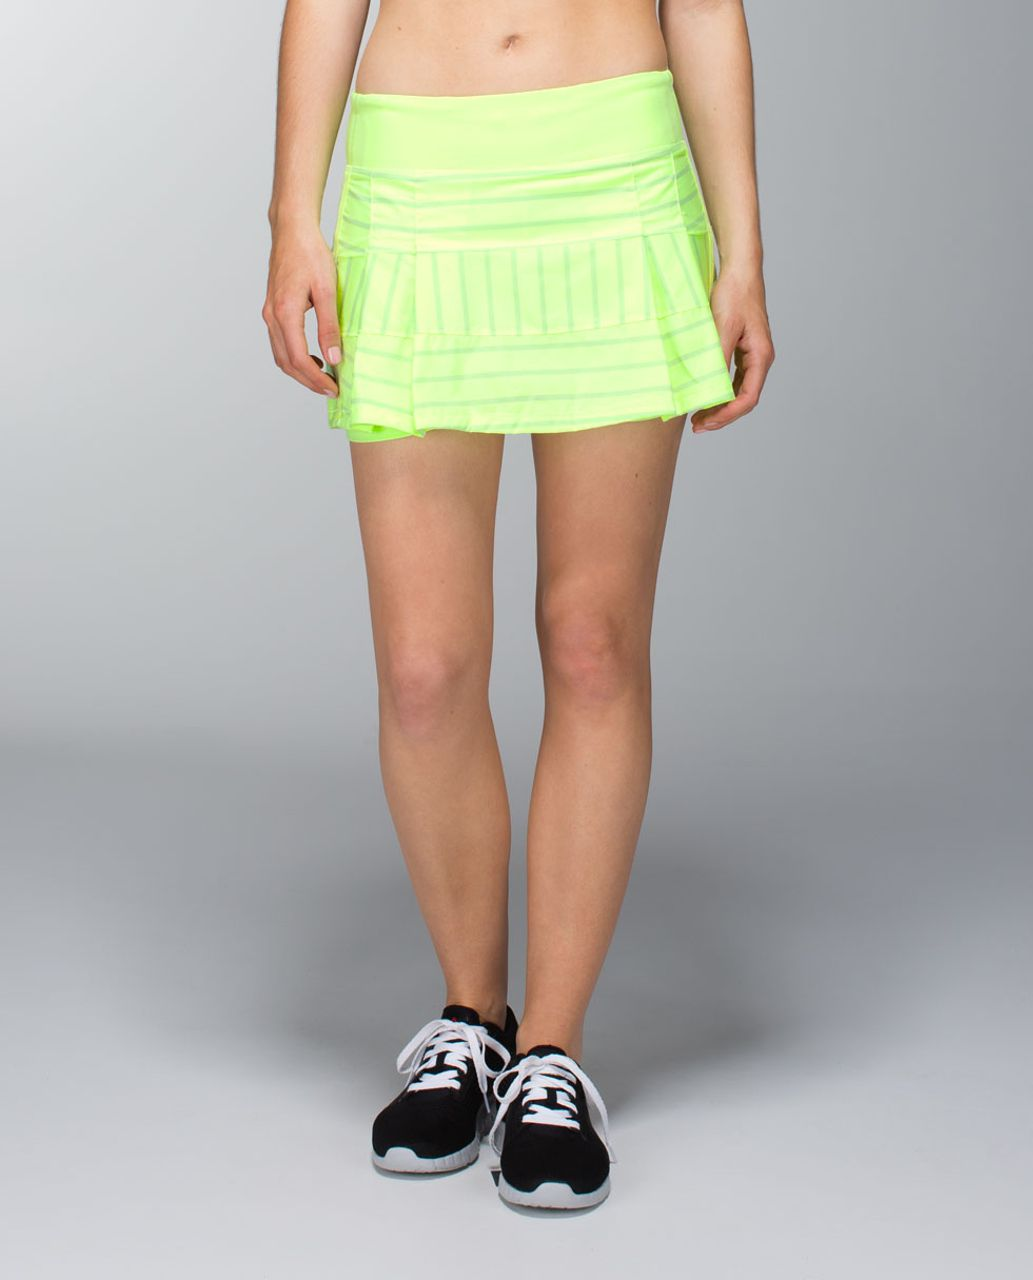 Lululemon Pace Rival Skirt (Regular) *2-way Stretch - Deauville Stripe Clear Mint Solid / Clear Mint